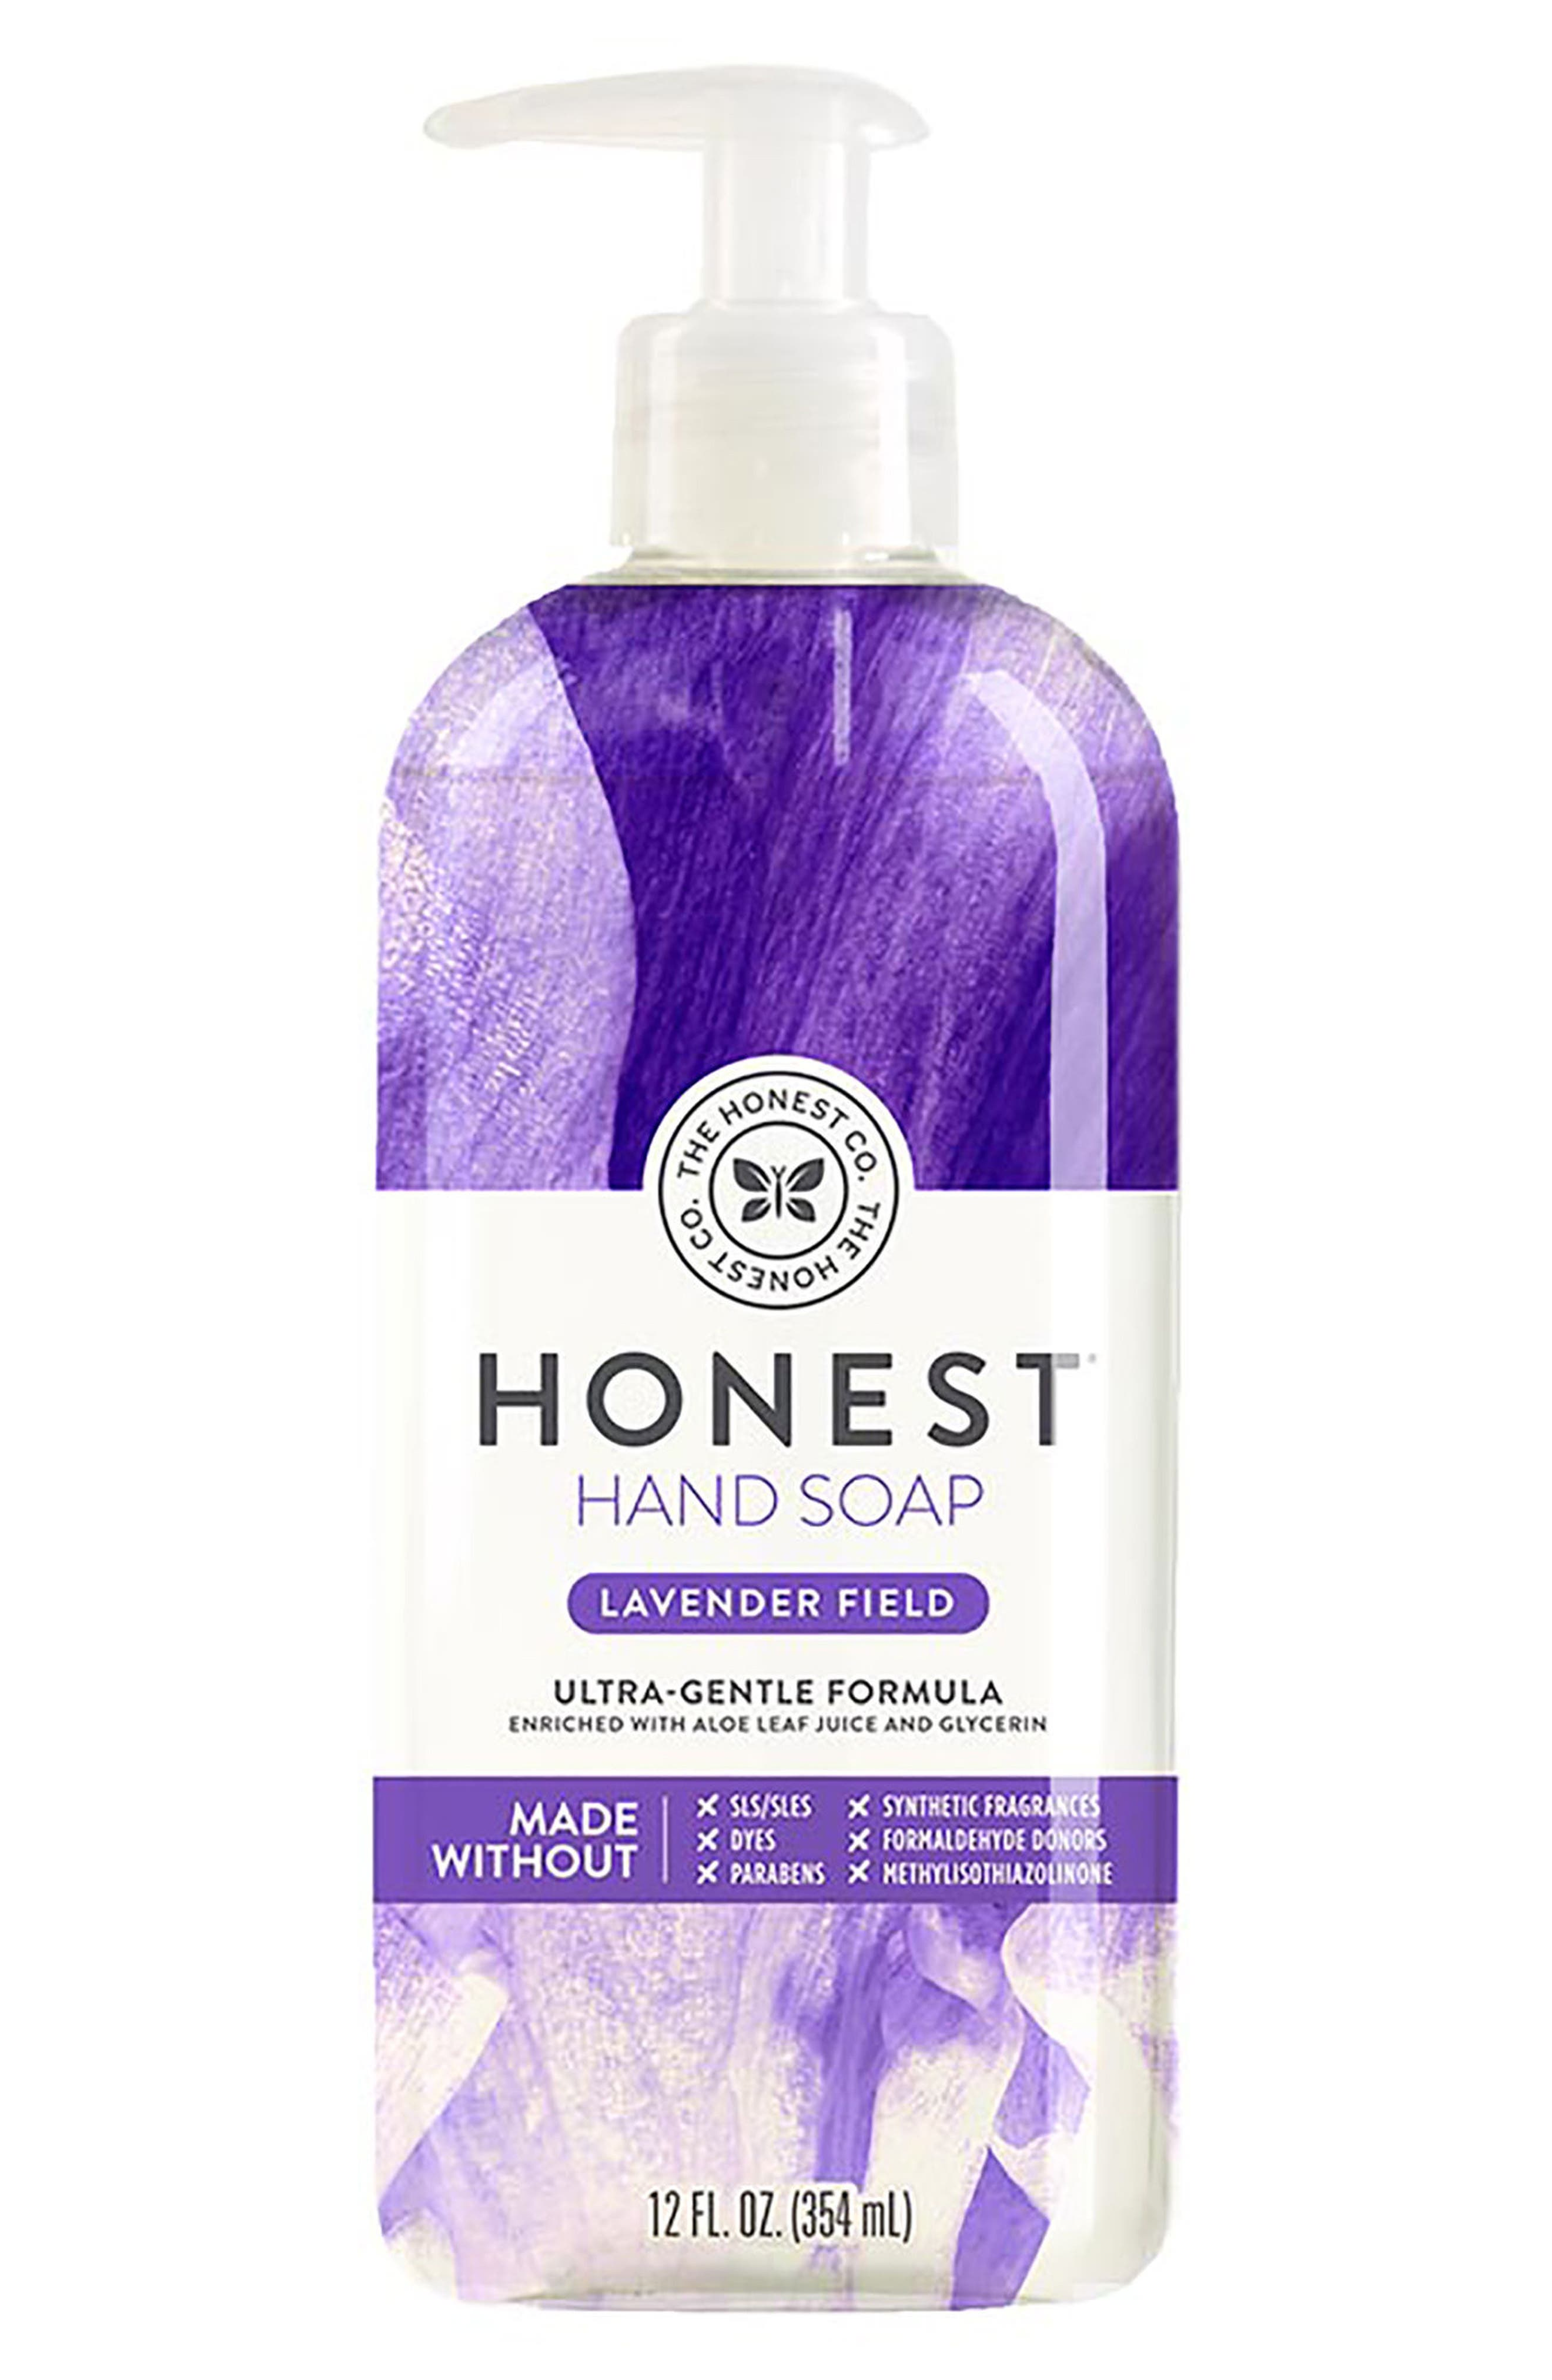 The Honest Company Lavender Field Hand Soap